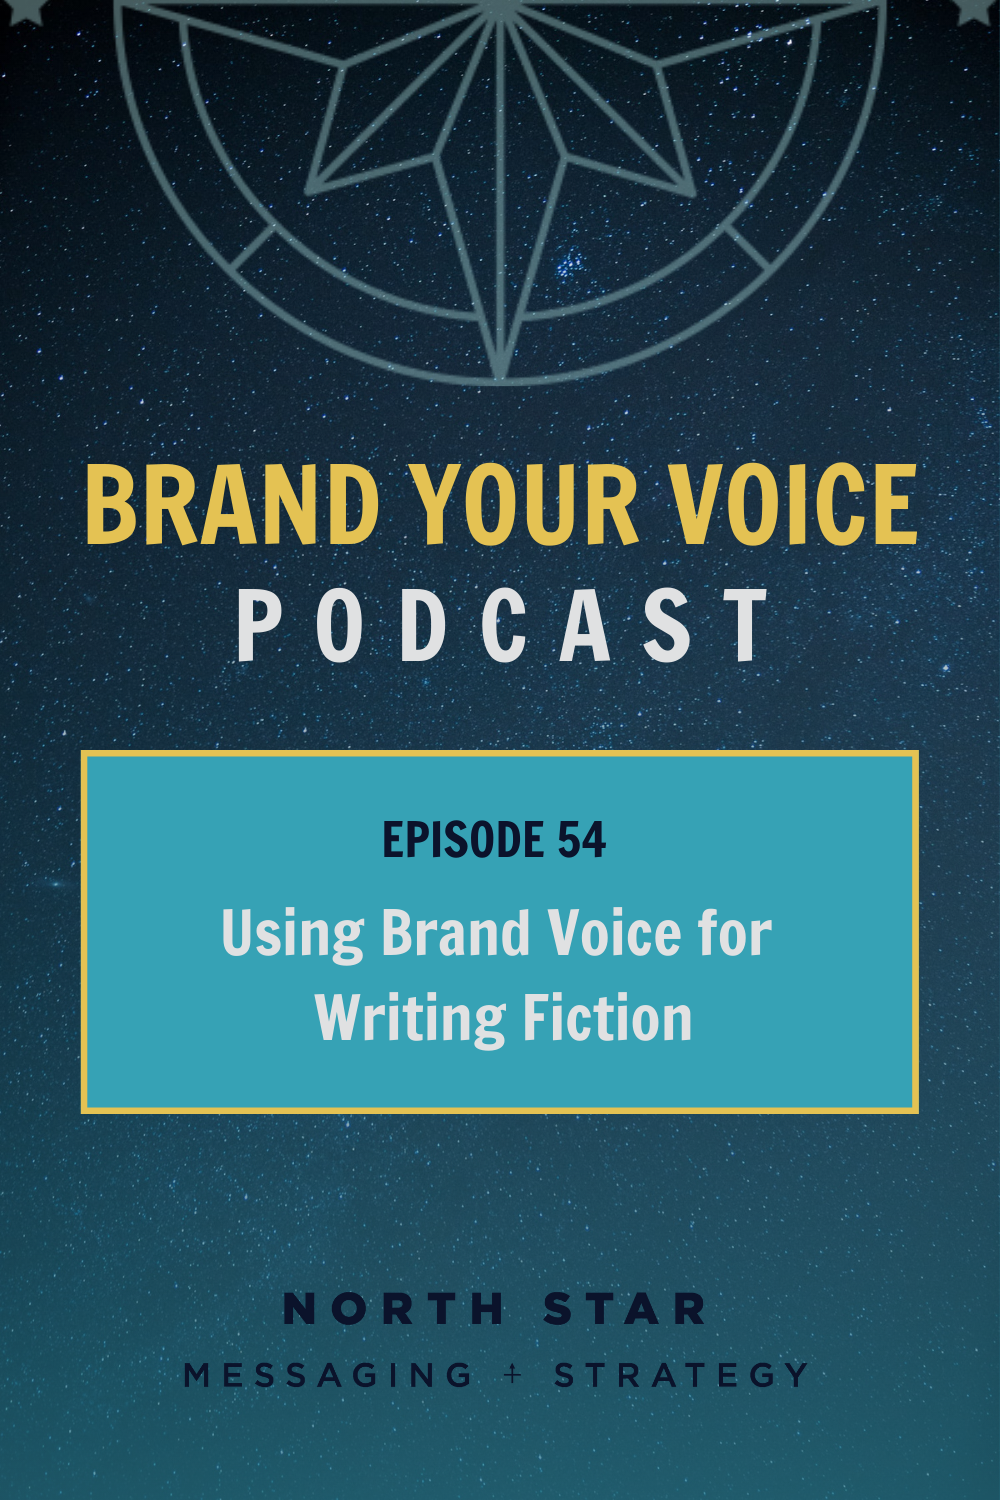 EPISODE 54: Using Brand Voice for Writing Fiction